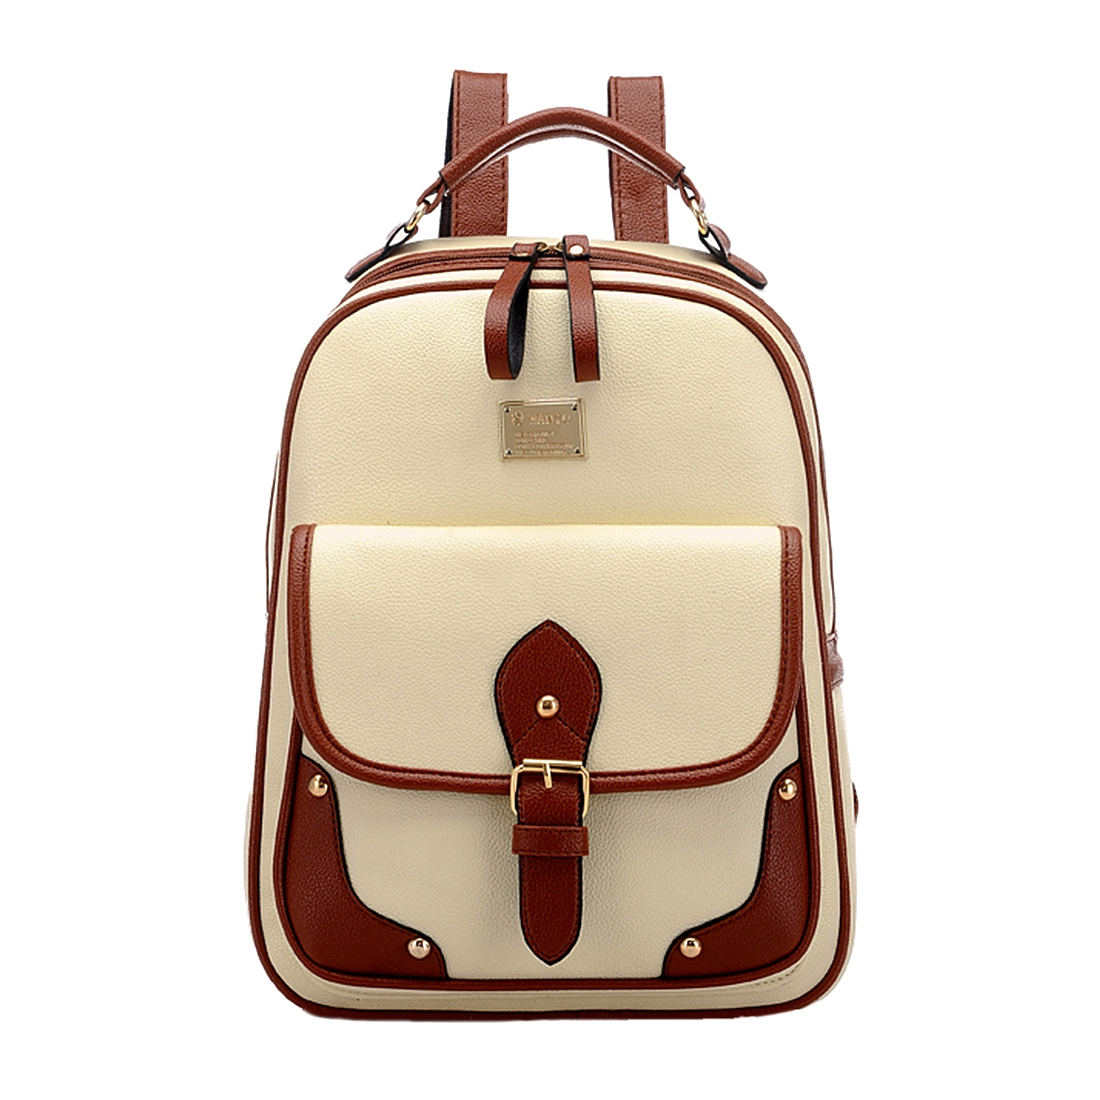 Vintage Leather Backpack Rucksack Shoulder Travel School Bag Knapsack Beige